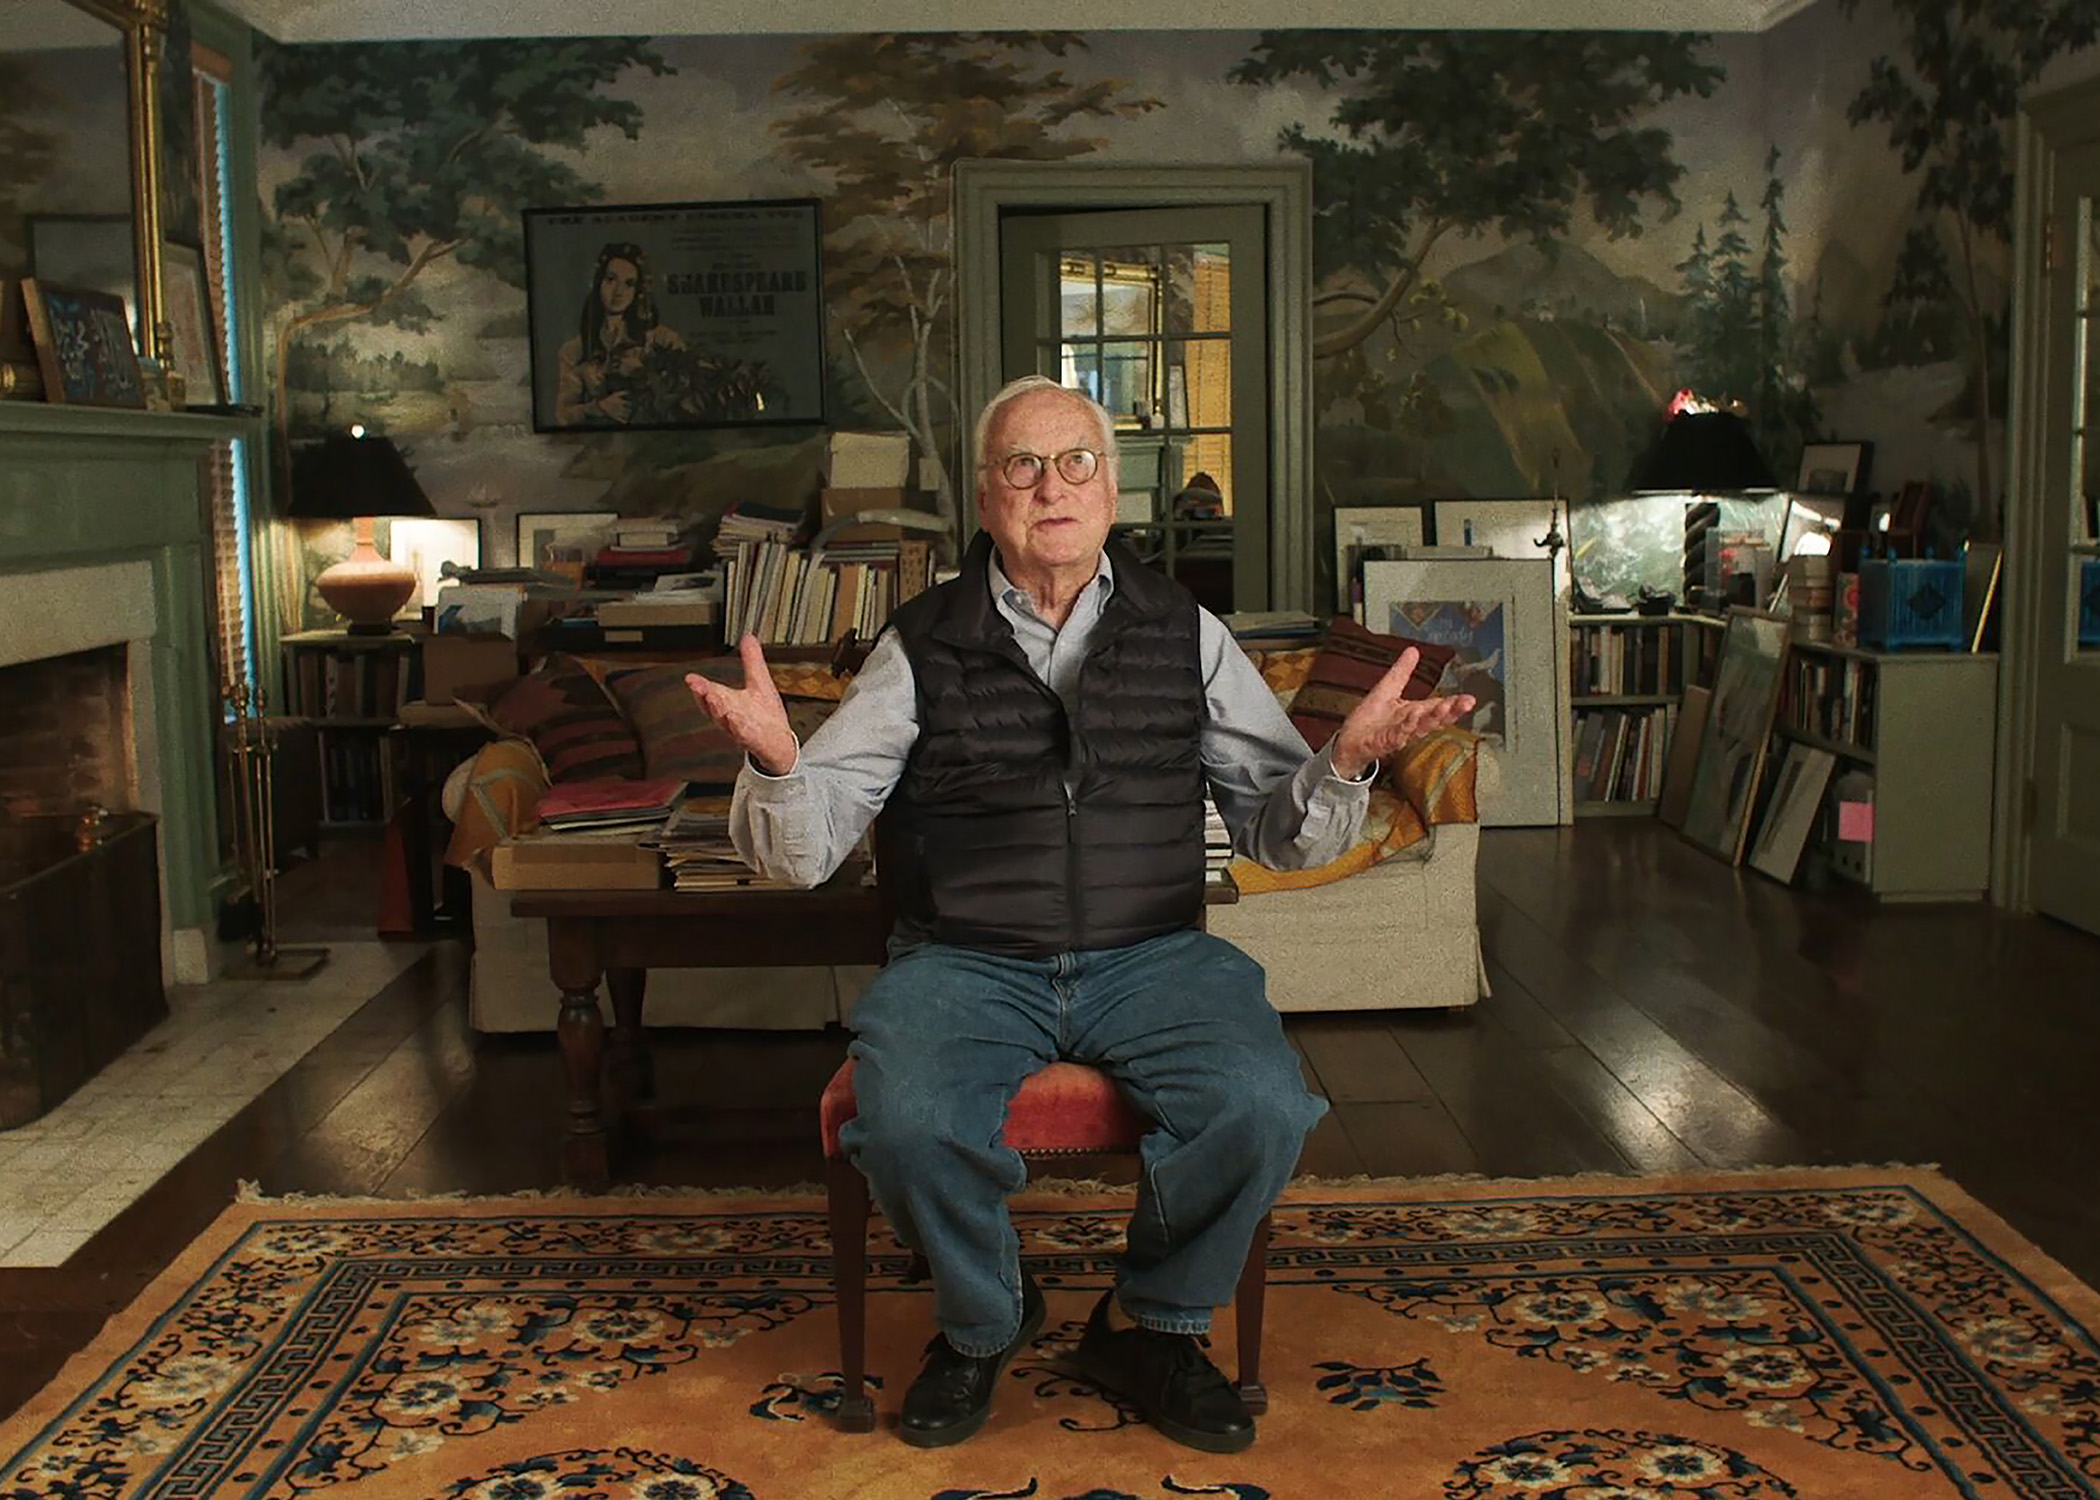 Filmmaker James Ivory gives a tour of his Hudson Valley home.